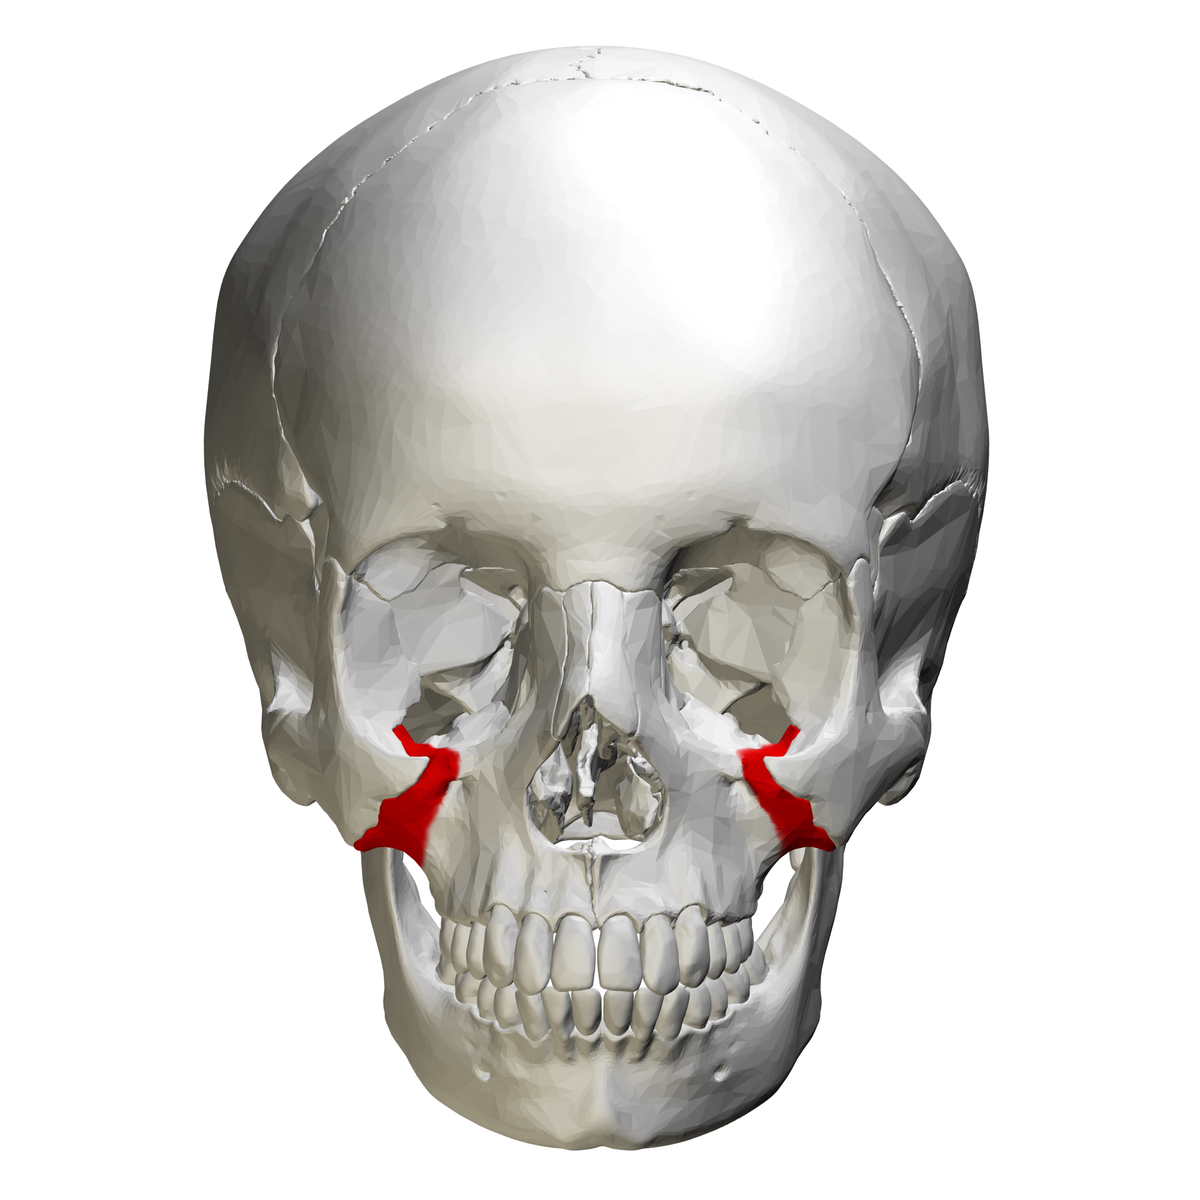 Zygomatic Process Of Maxilla Wikipedia